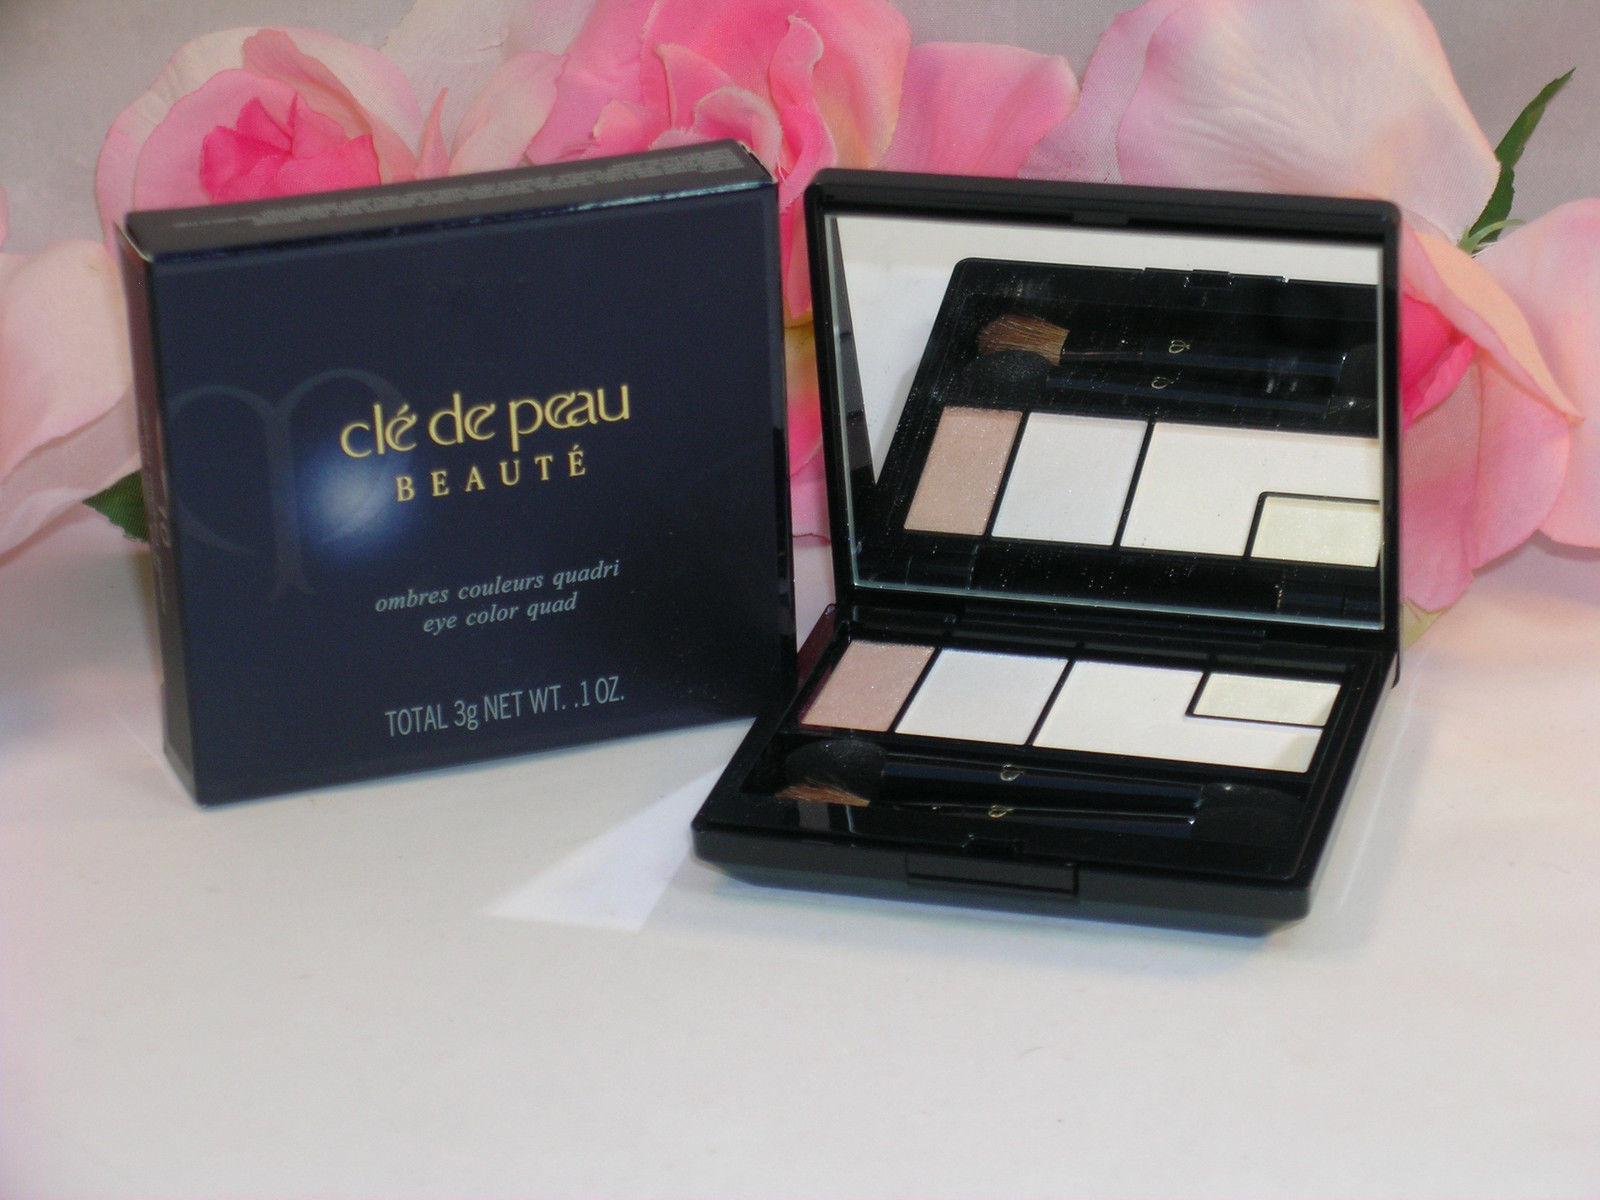 Primary image for New Shiseido Cle De Peau Beaute Eye Shadow Color Quad #10 Tan Shimmer Highlighs